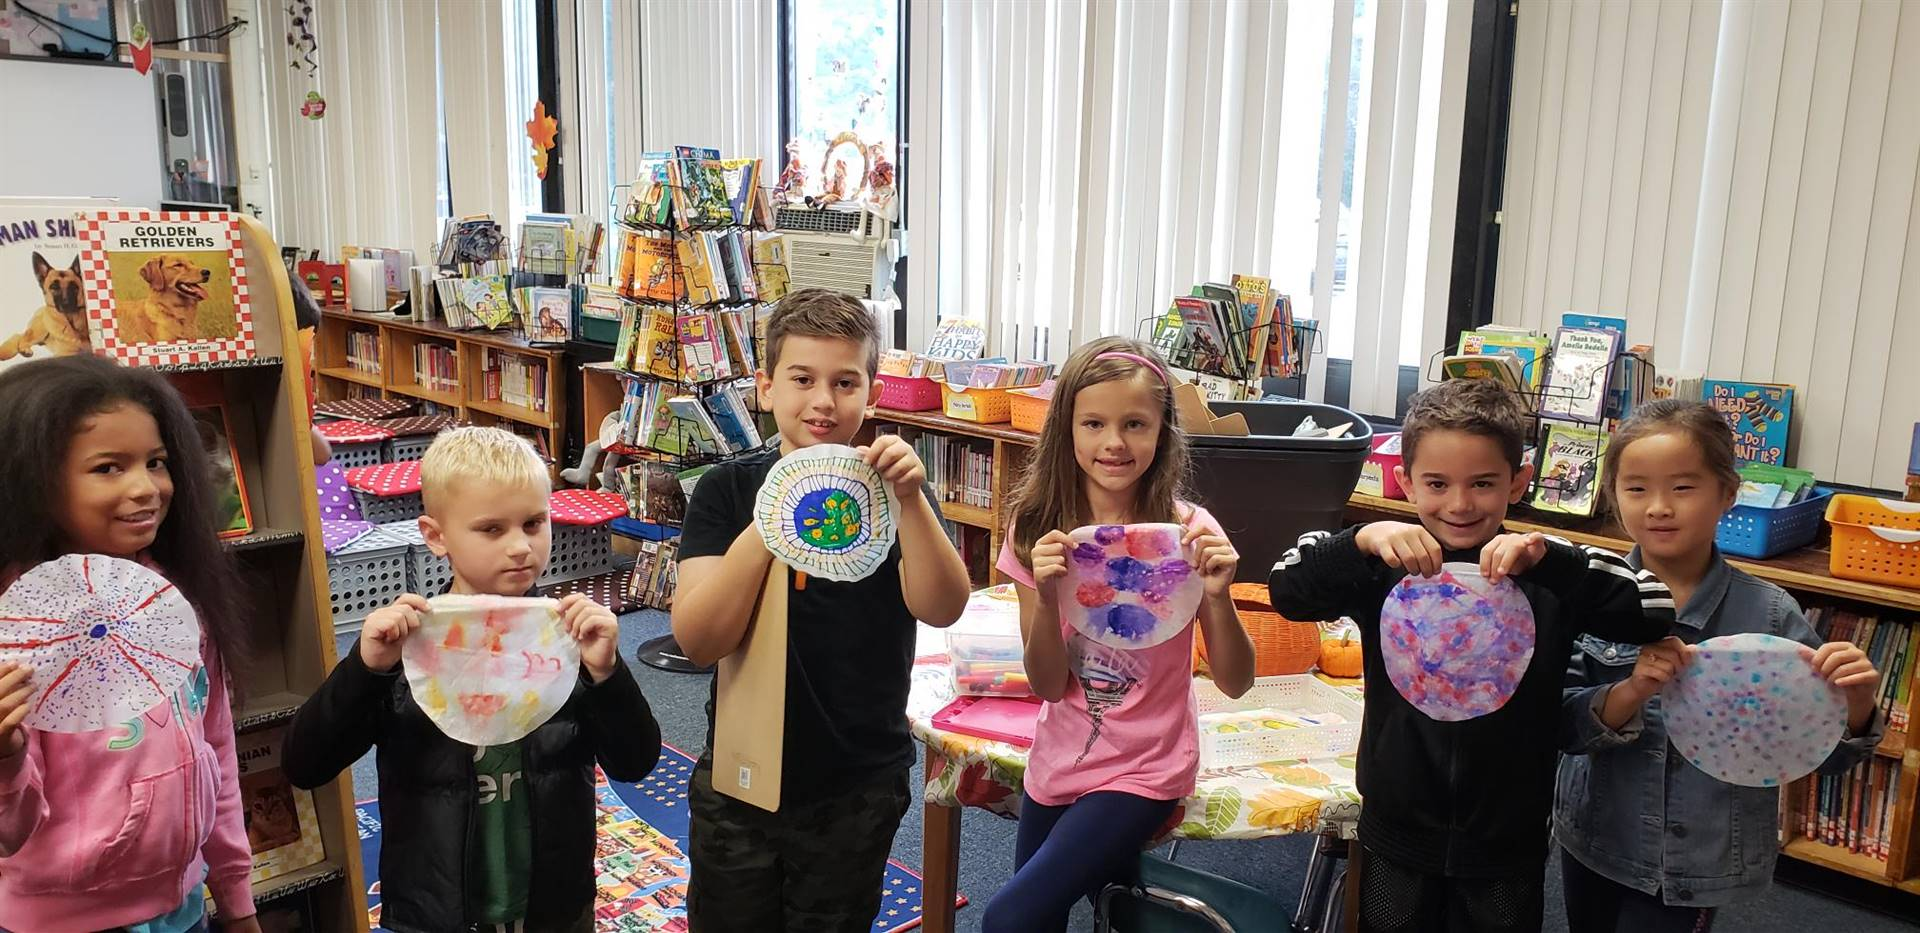 Students with Art they created in Library Class with Ms. Bronzino